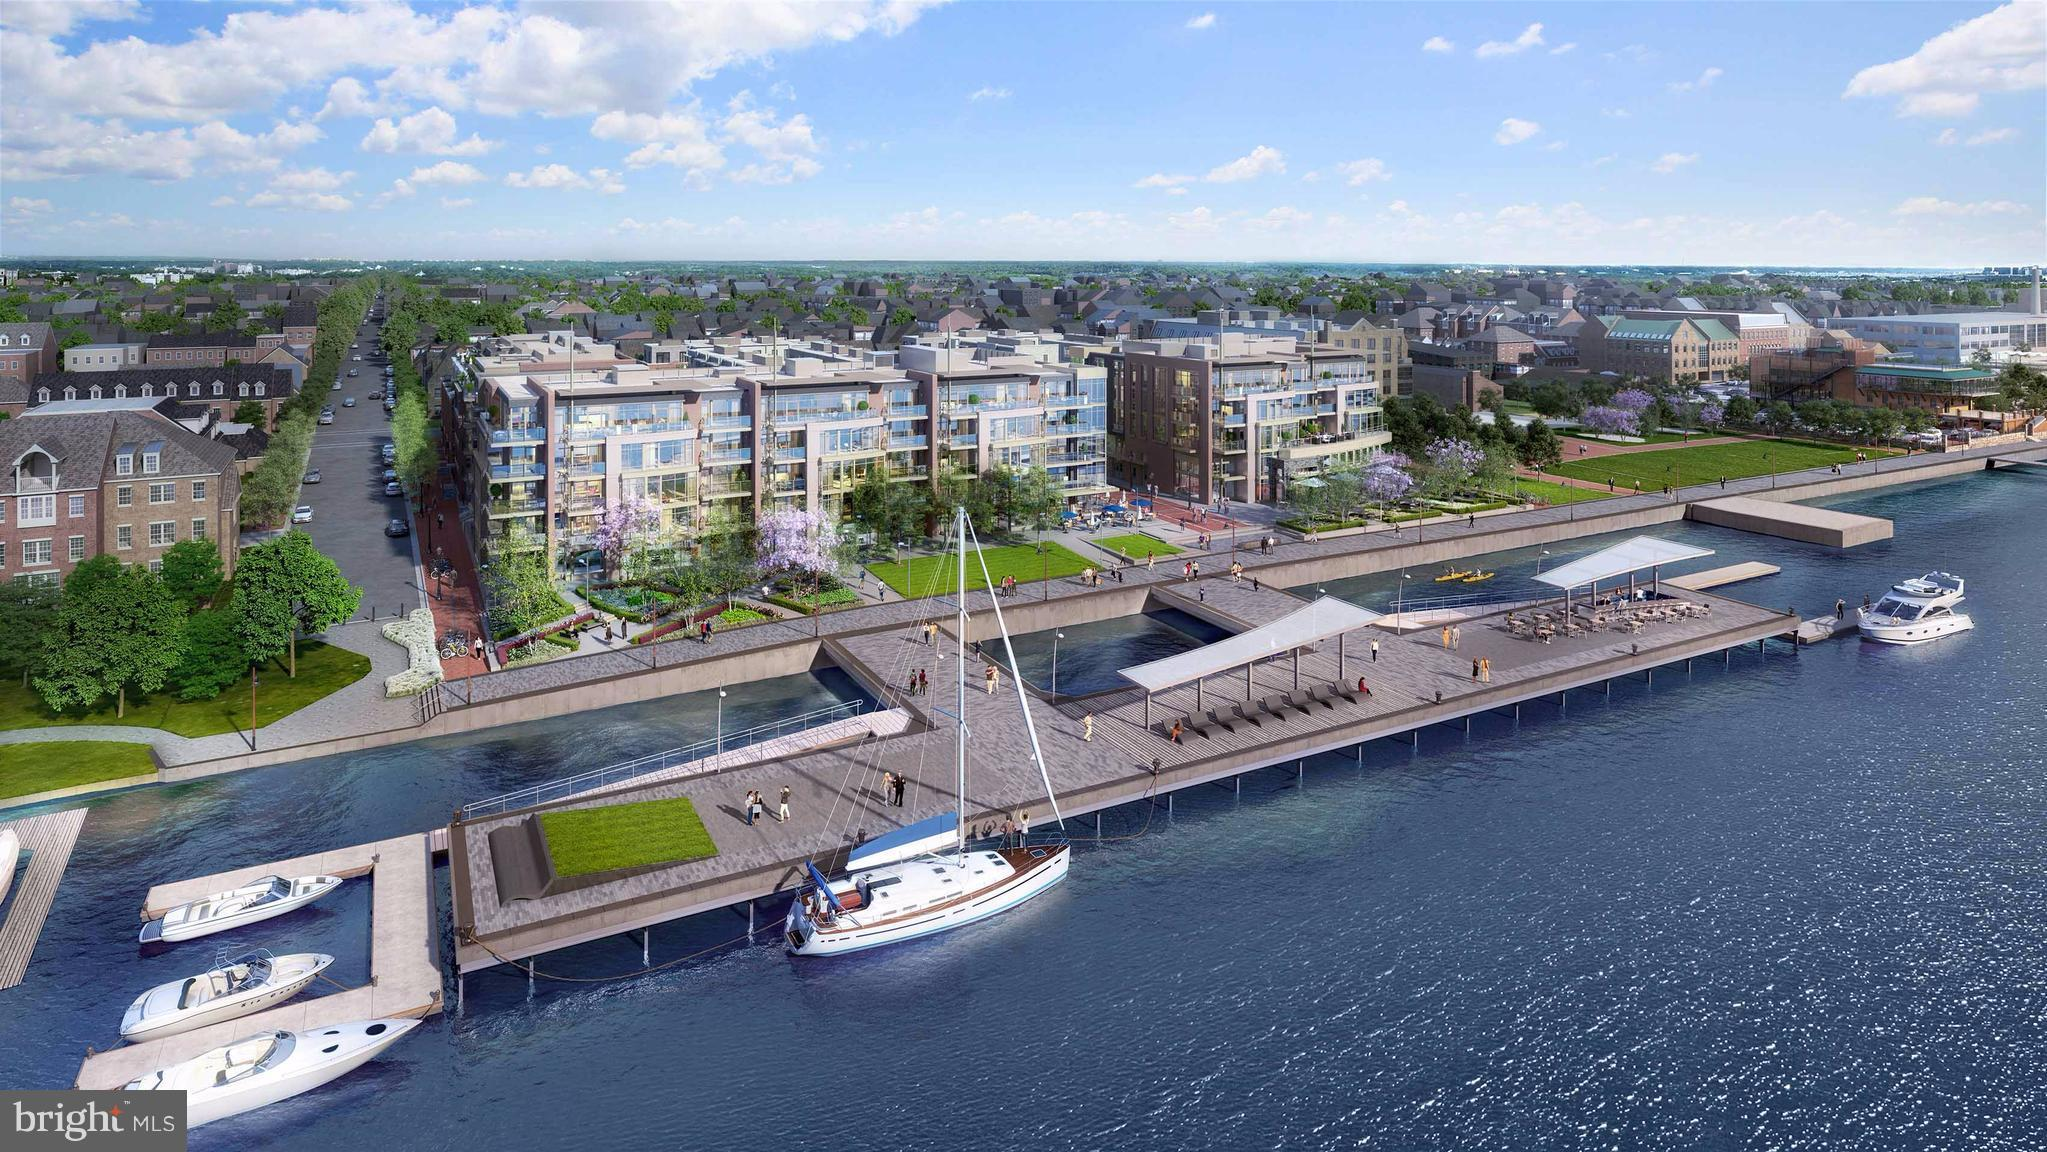 OPEN BY APPOINTMENT FOR PRE-CONSTRUCTION SALES! Perfectly situated along the Old Town waterfront, Robinson Landing will feature new townhomes and condominiums, shopping, dining, a revitalized pier, new public promenade & more. Residents will enjoy luxury amenities including state-of-the-art fitness center & yoga studio, all just steps from the Potomac riverfront.